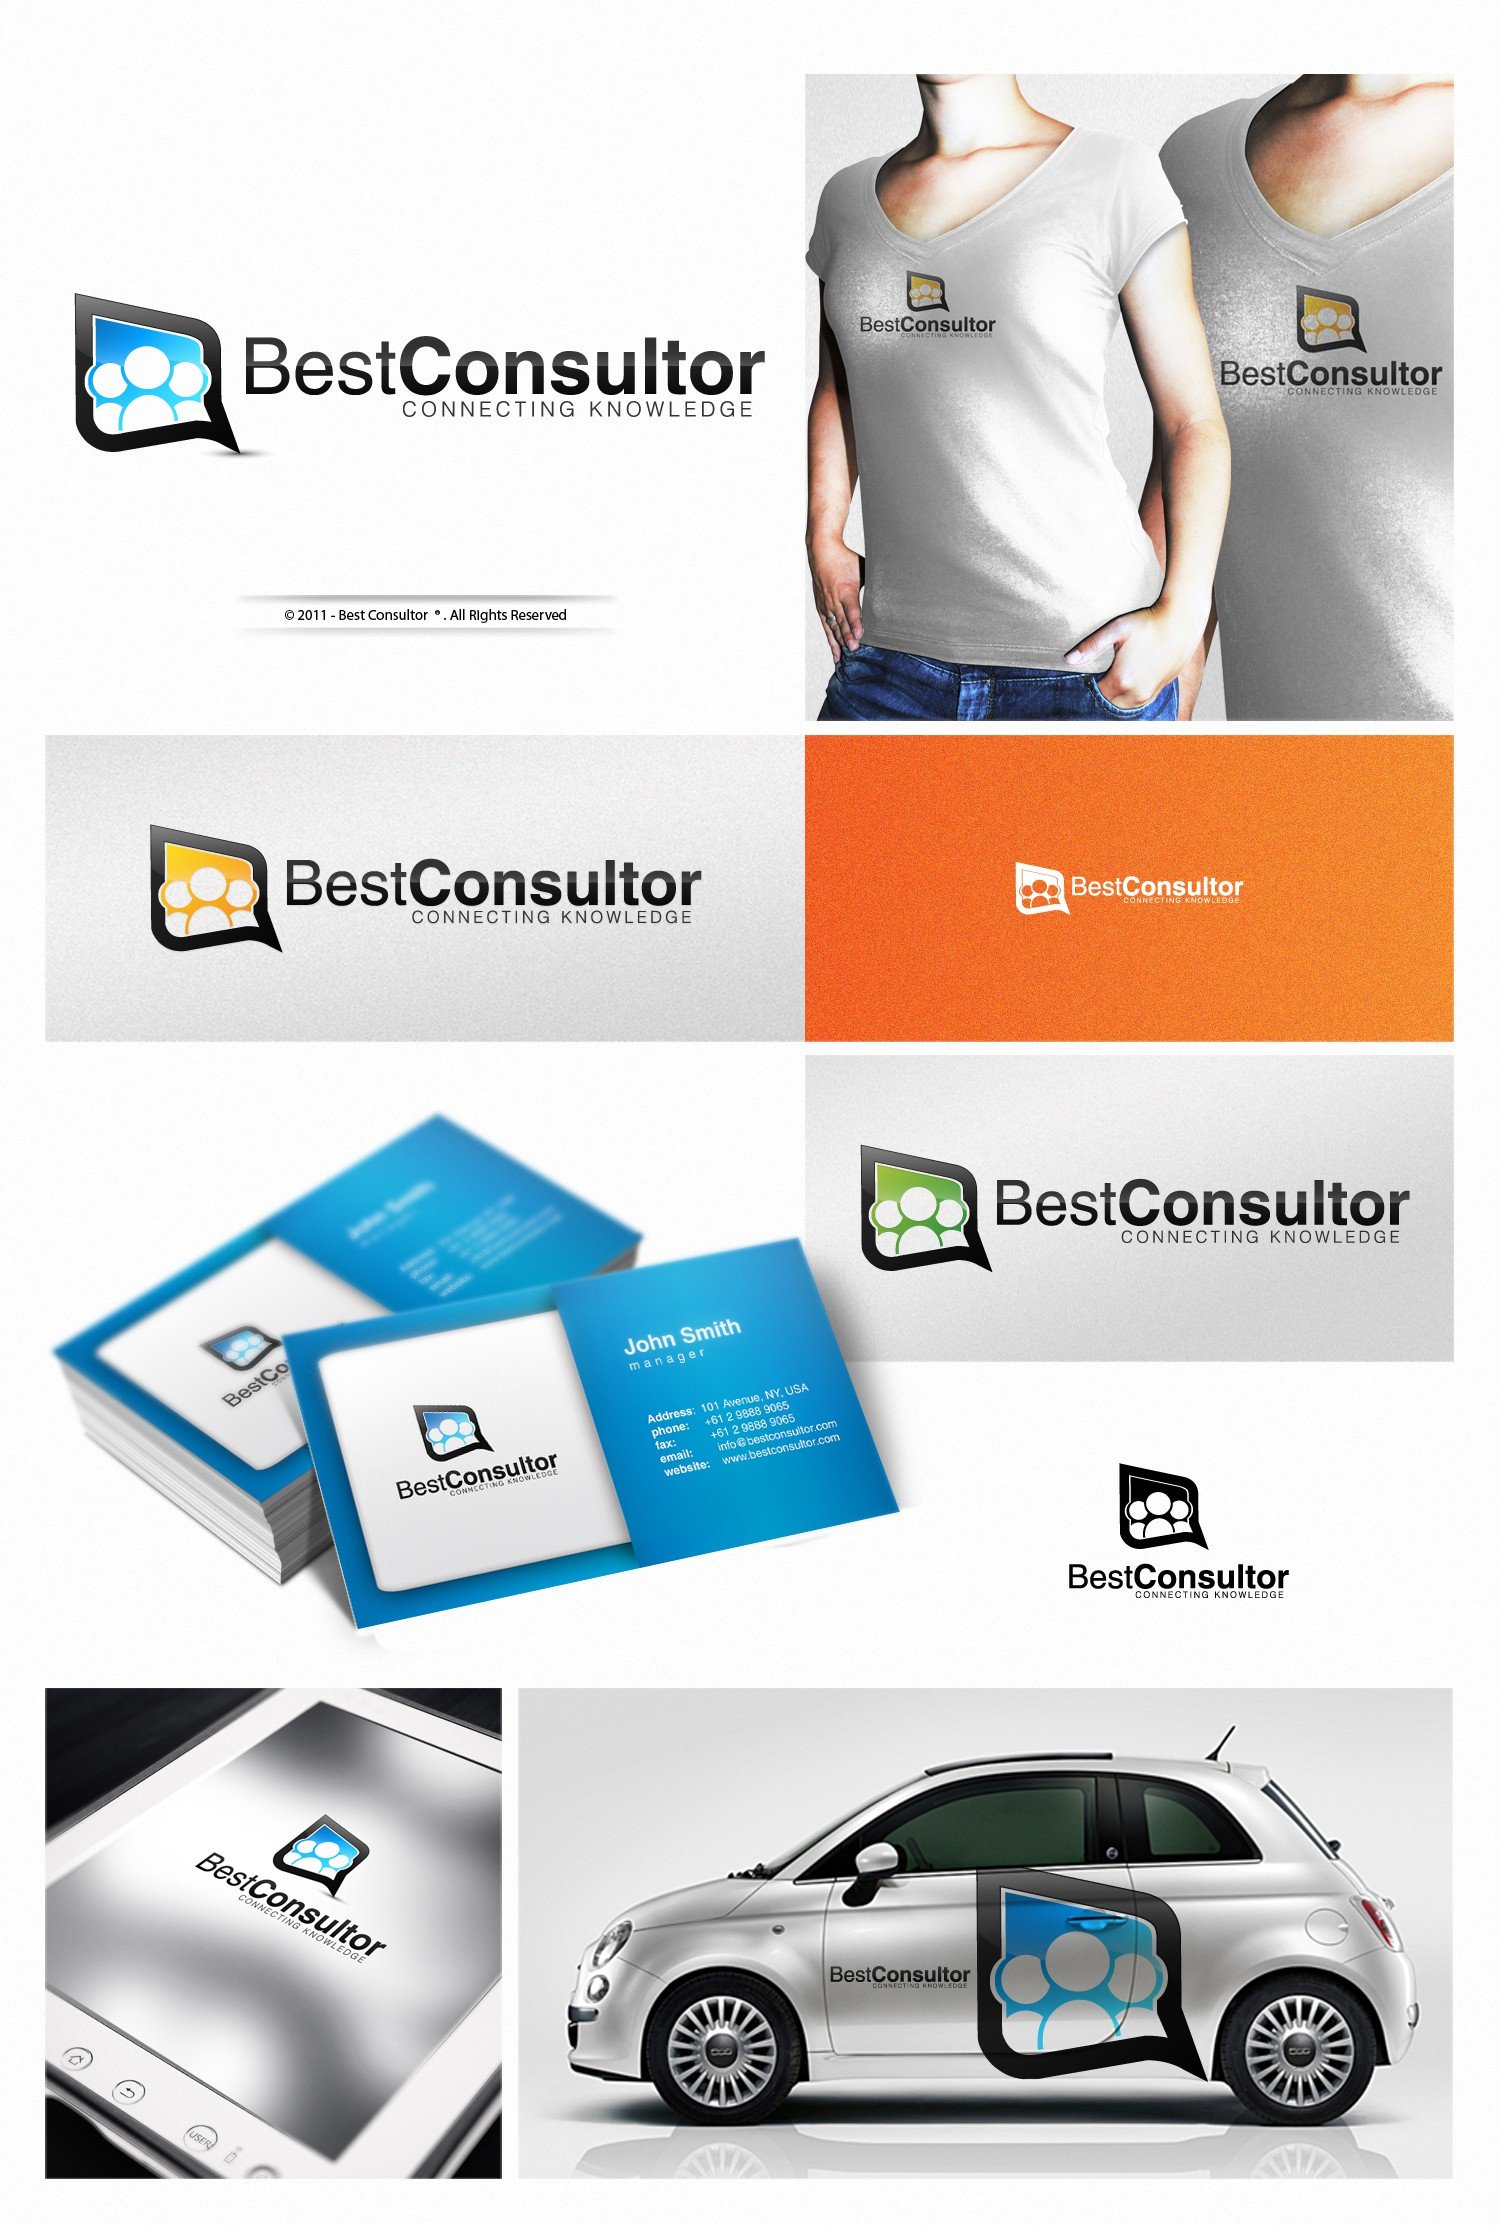 Best Consultor needs a new logo